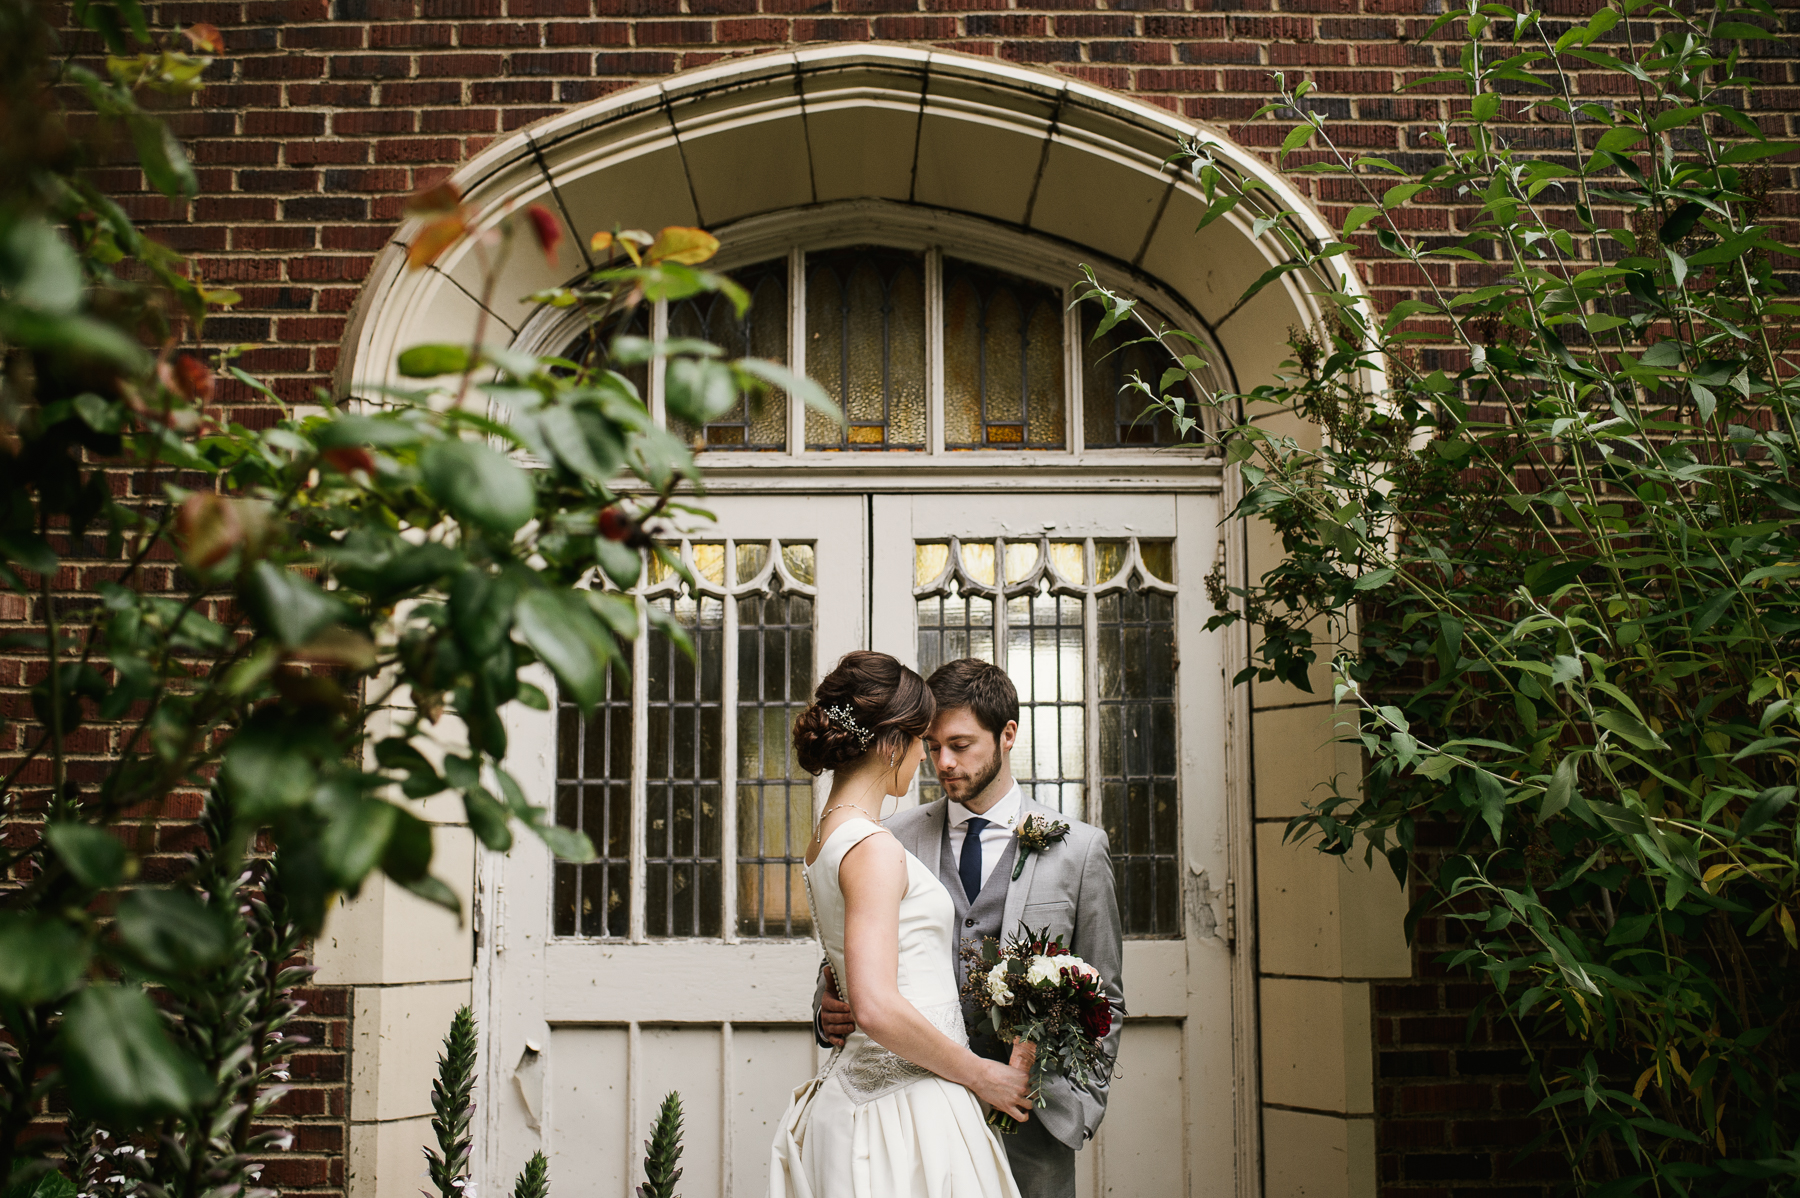 st. anne's chapel wedding portrait garden